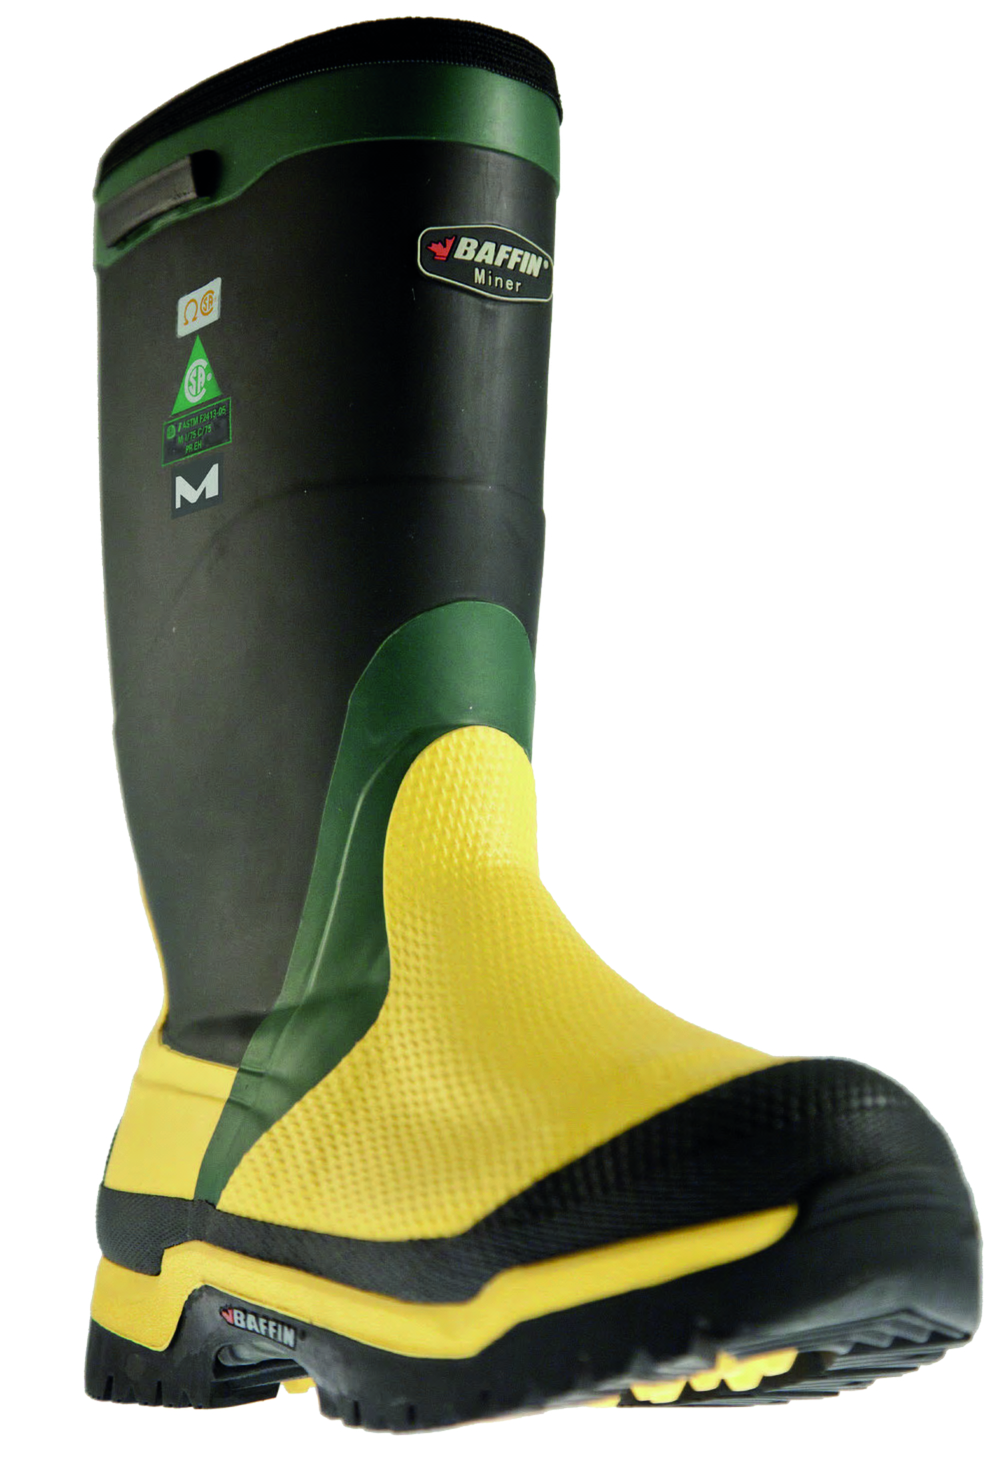 BAFFIN MINER BOOT ,SAFETY CSA INTERNAL METATARSAL GUARD